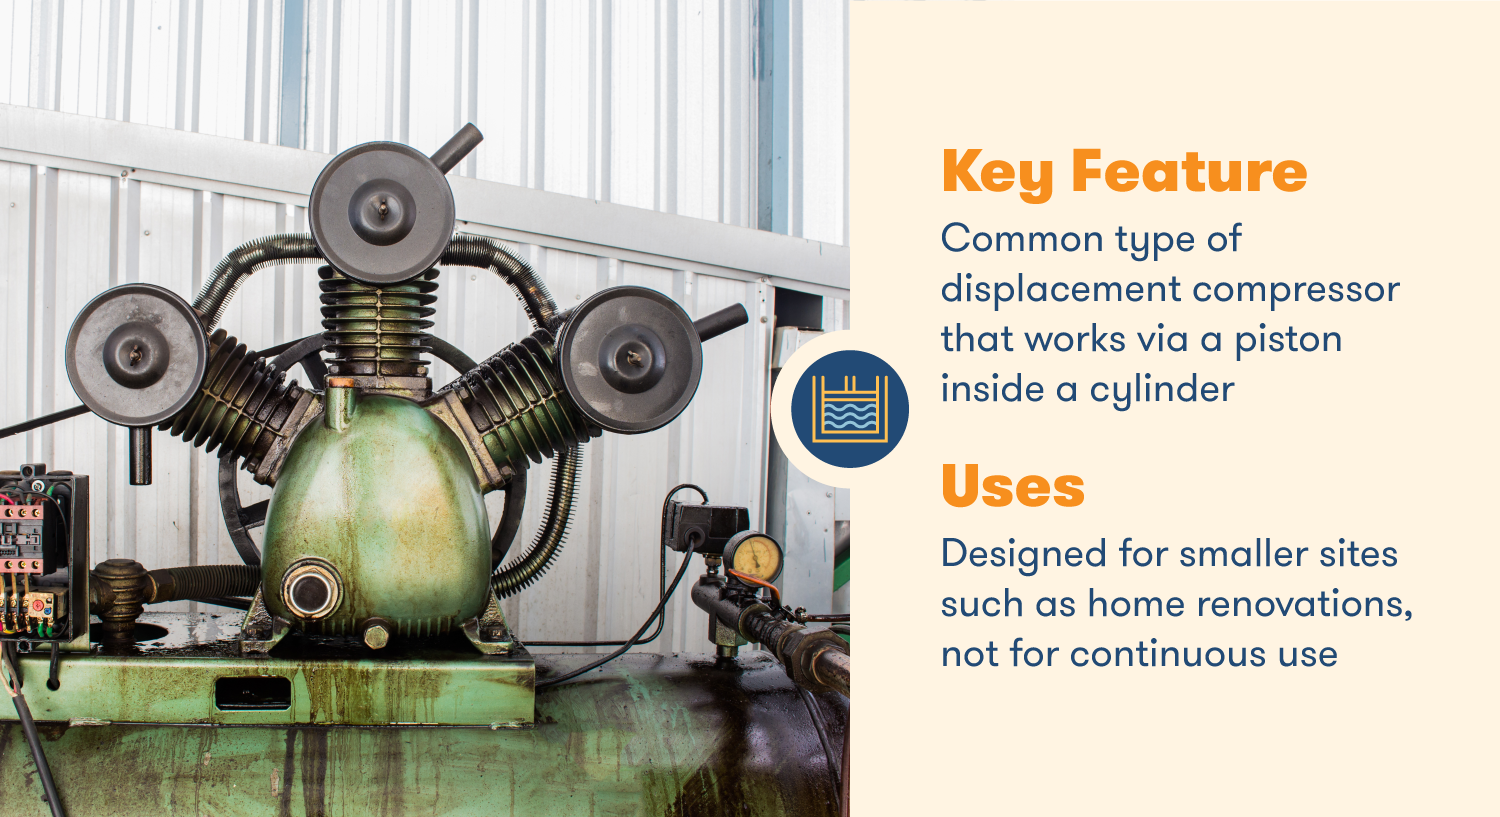 Reciprocating compressors work via a piston inside a cylinder, designed for smaller sites and non-continuous use.